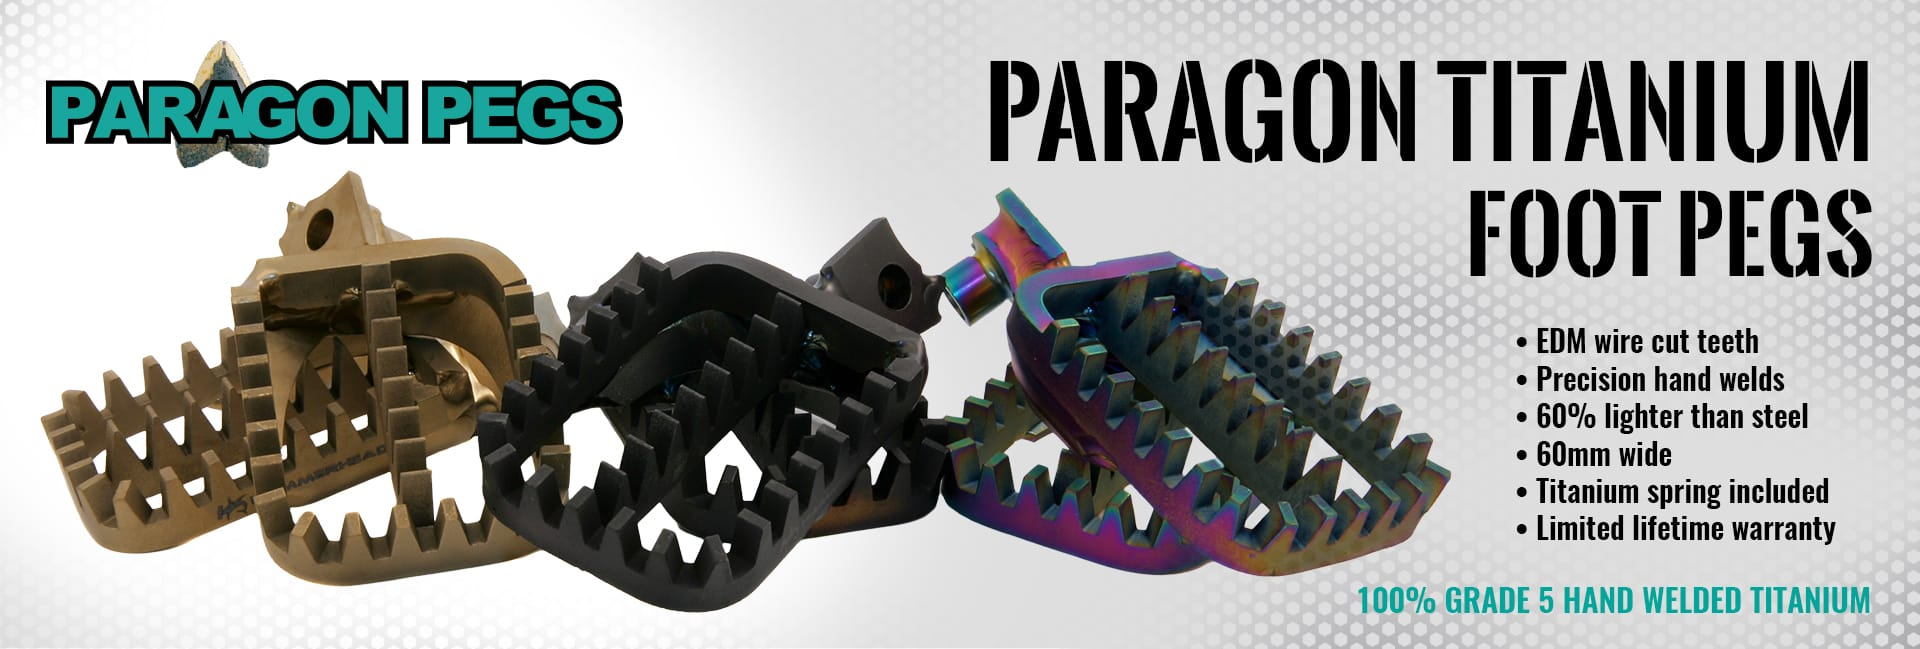 Paragon Titanium Footpegs